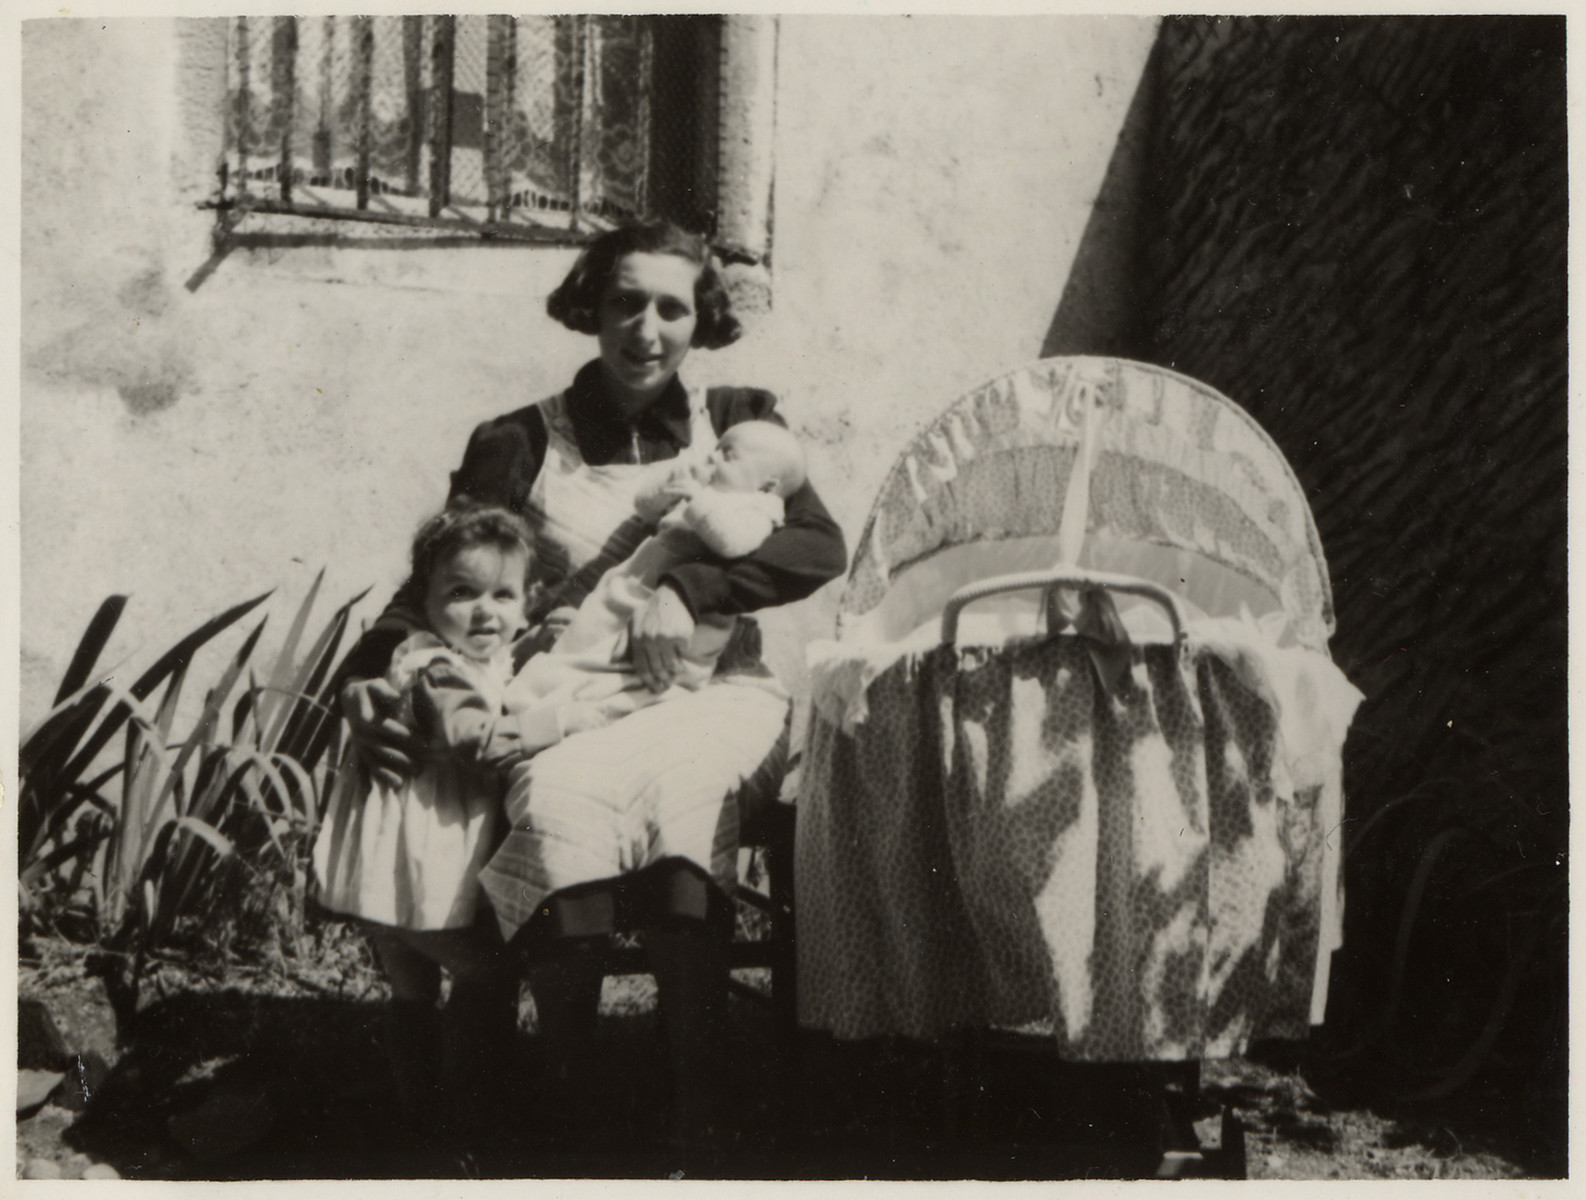 Portrait of a woman with her two small children posing in front of a house.   Pictured is Tonia Lechtman with her children Vera and Marcel.